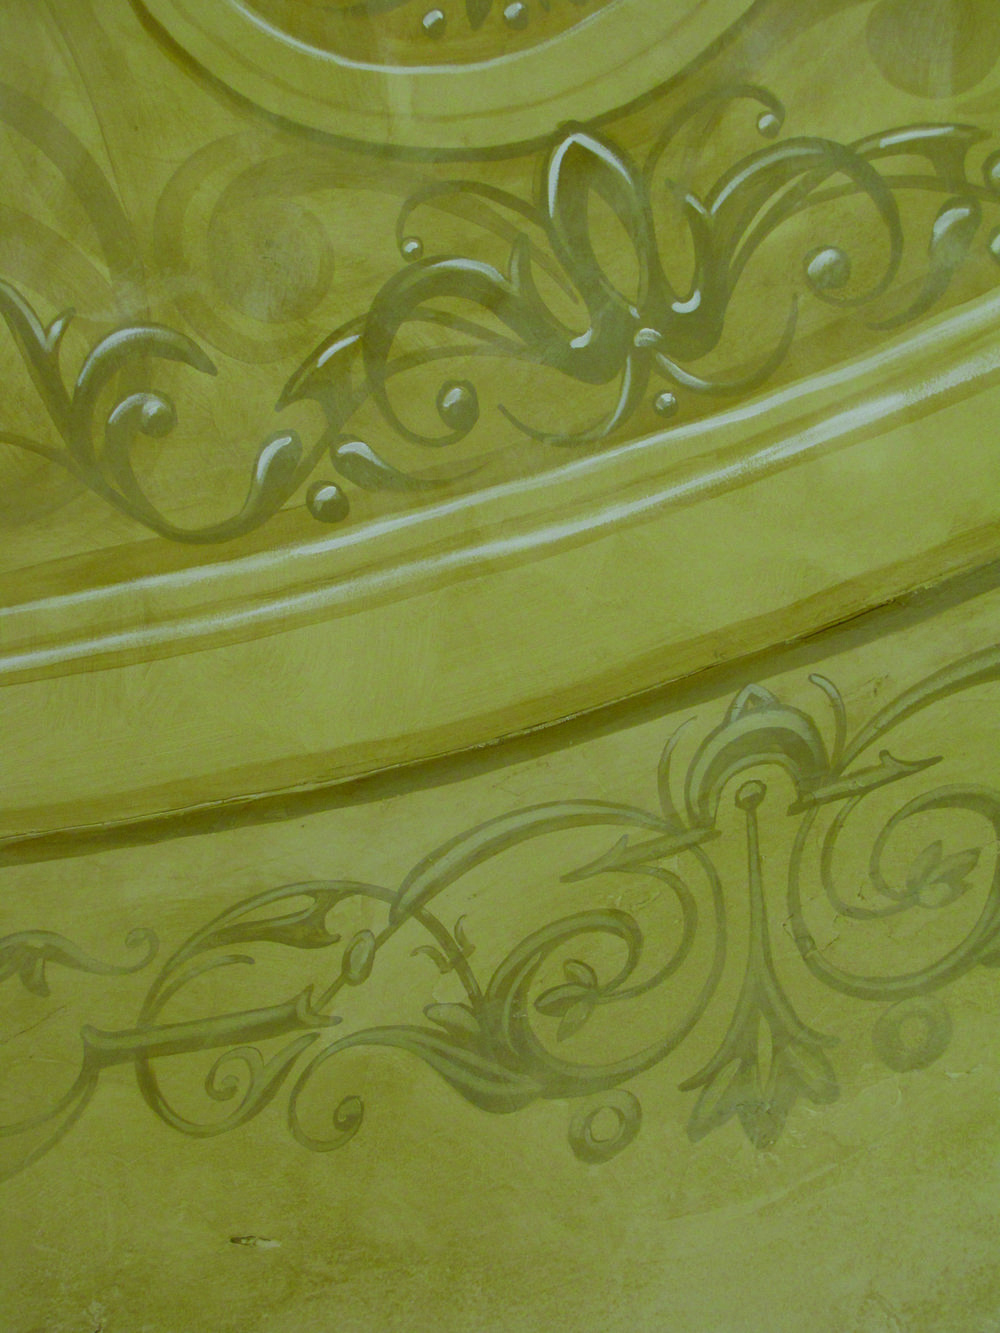 domedetail.jpg